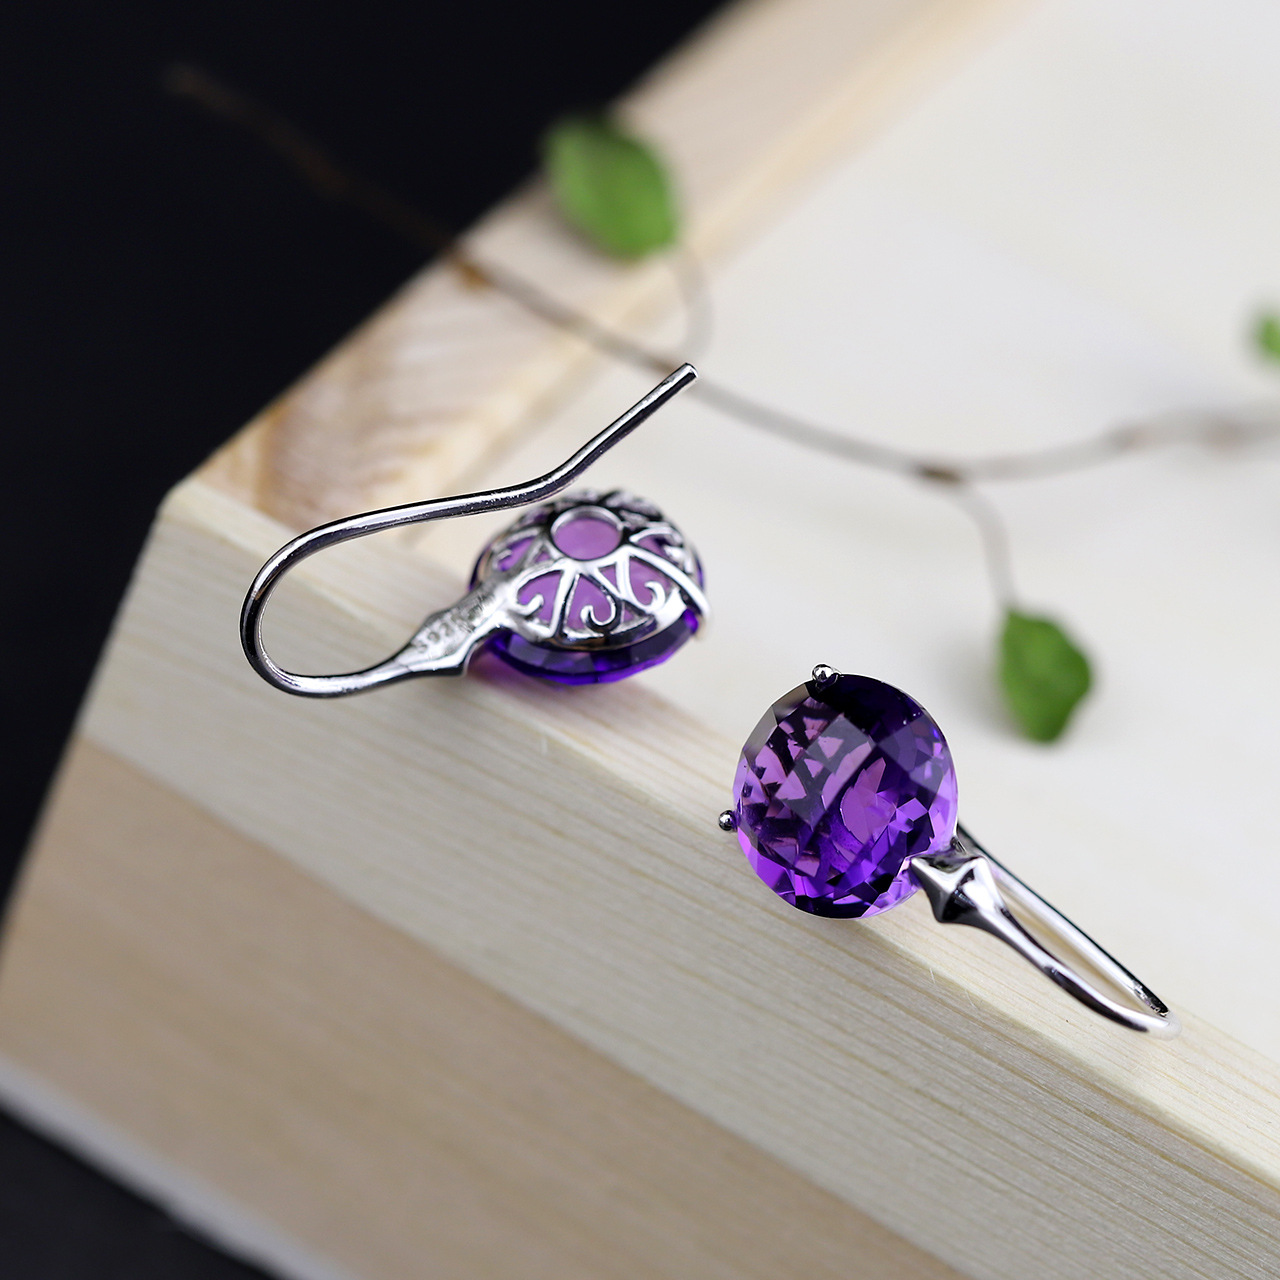 Character Silver Items S925 Pure Silver Ornaments Earrings Wholesale Thai Silver Handmade Woman Cut Amethyst Pendant character silver product s925 pure silver new mark antique watch authentic thai contracted female model